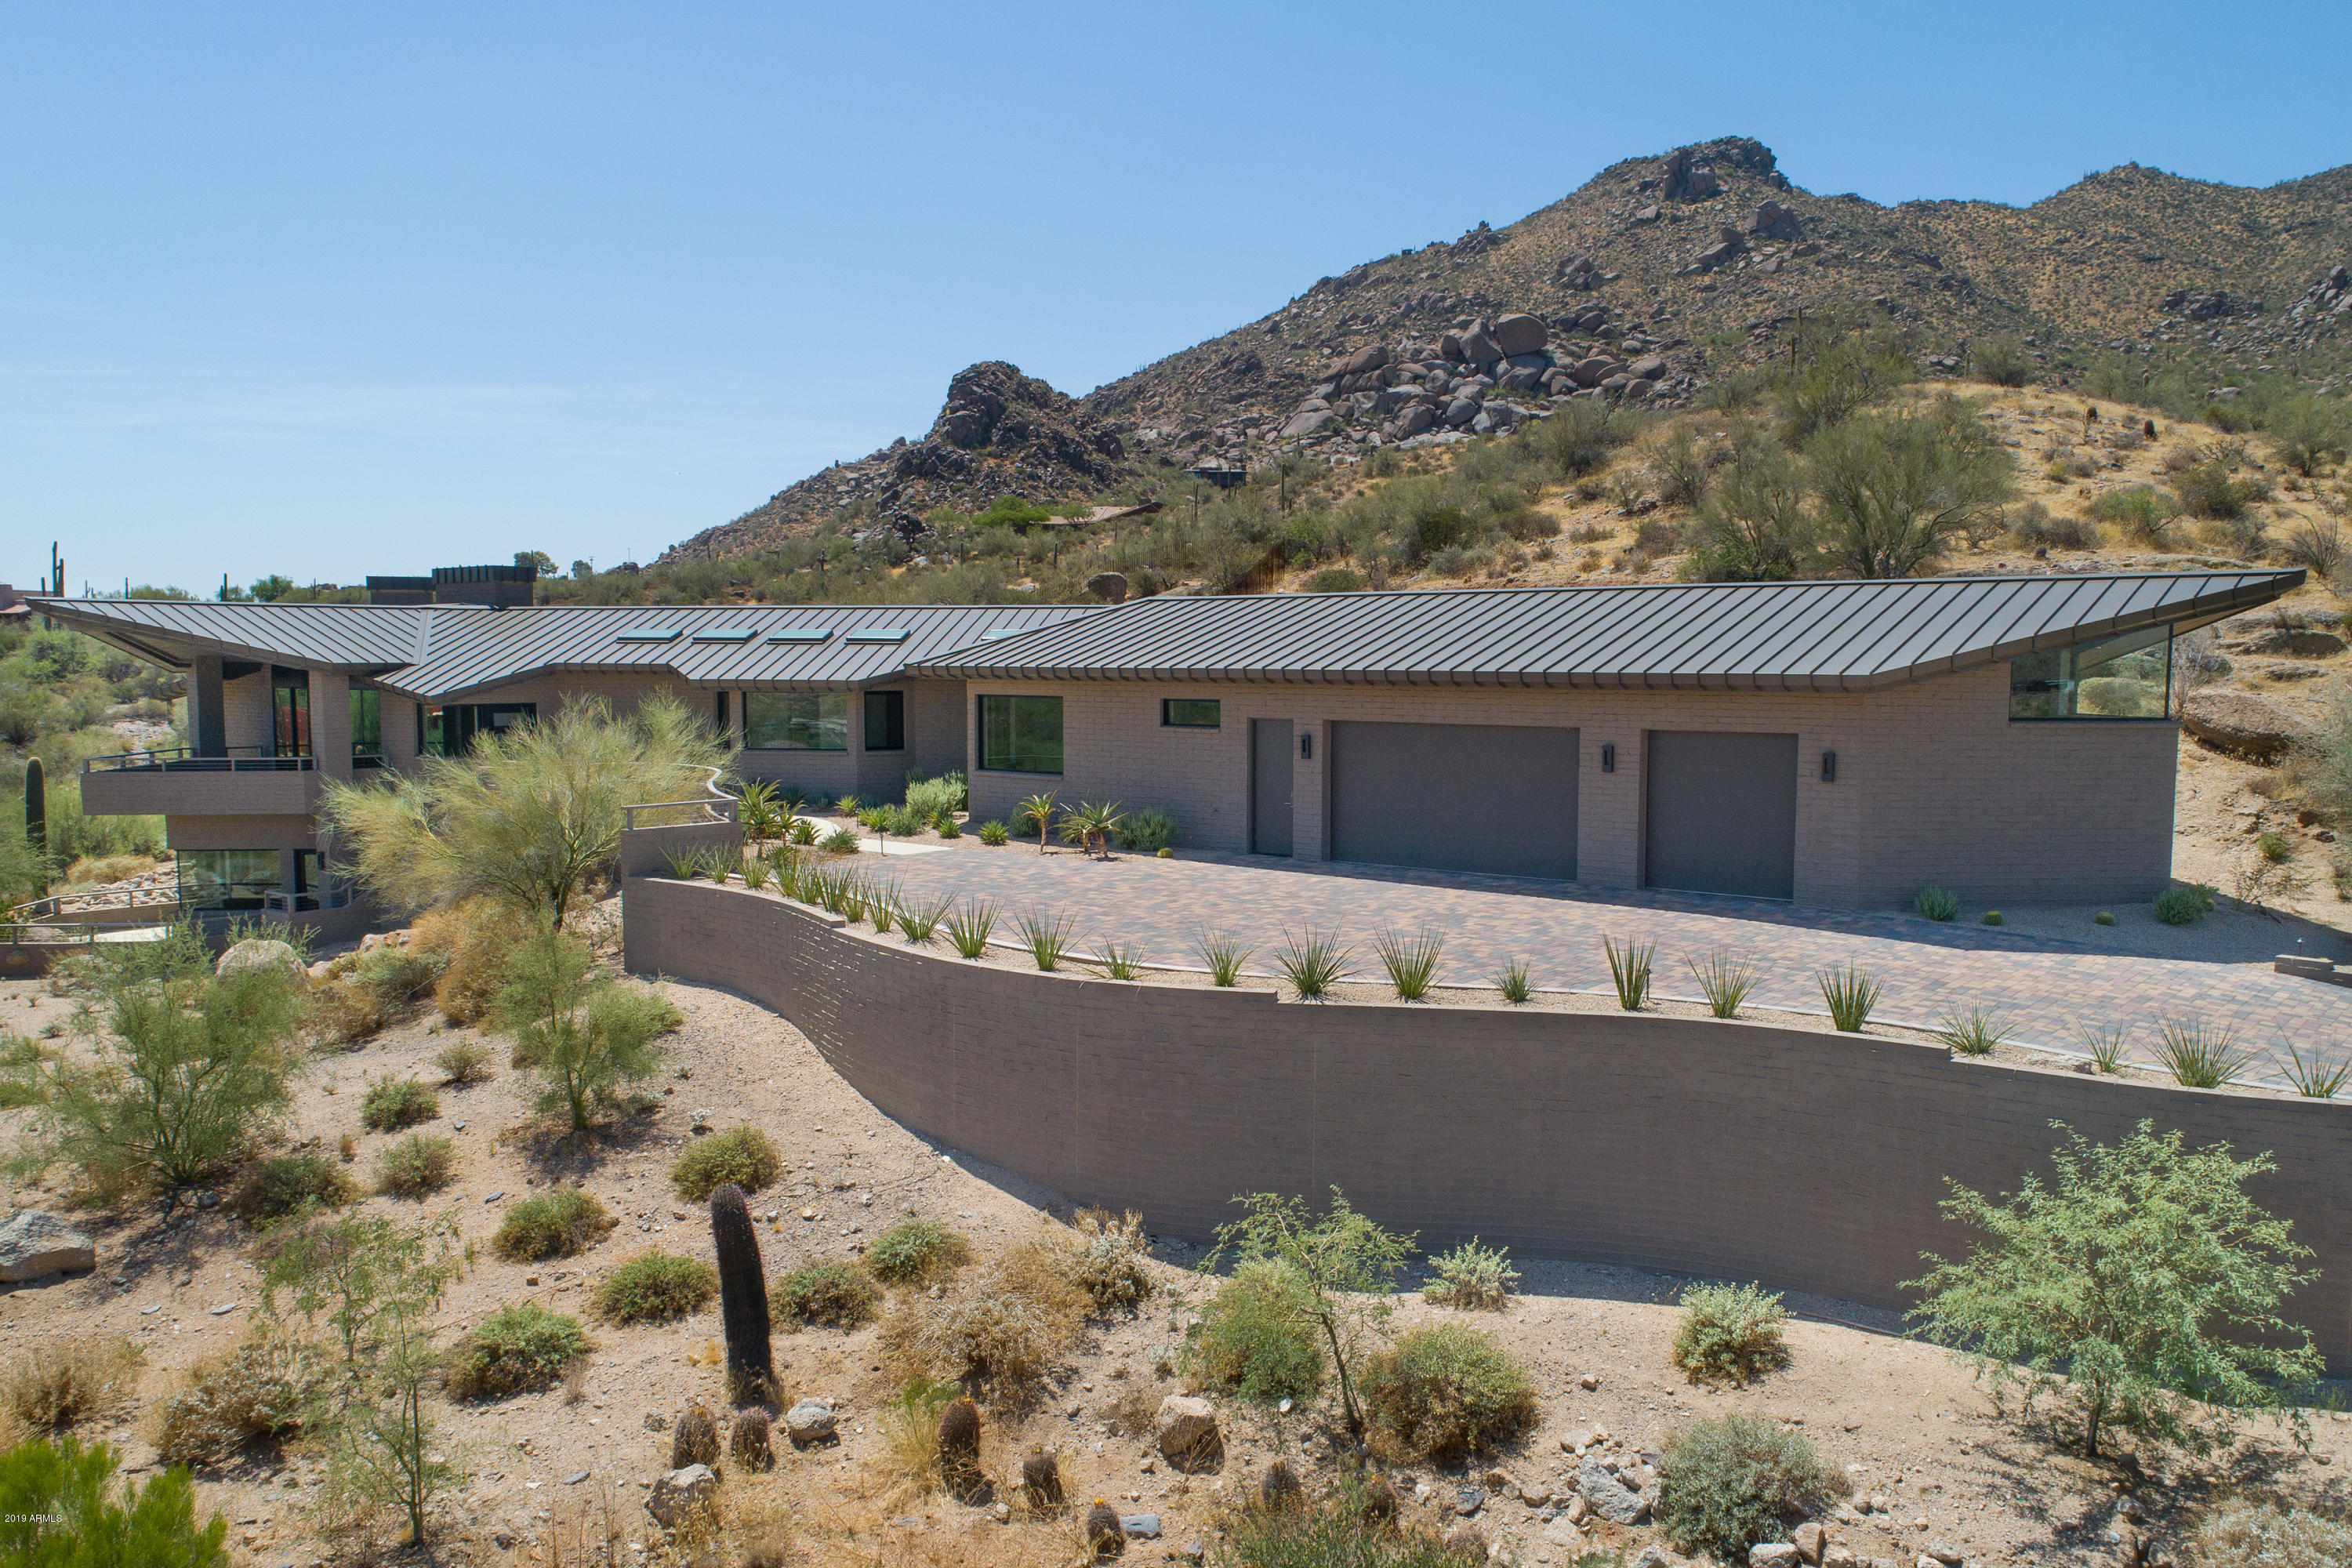 MLS 5843318 37251 N Nighthawk Way, Carefree, AZ 85377 Carefree AZ Gated